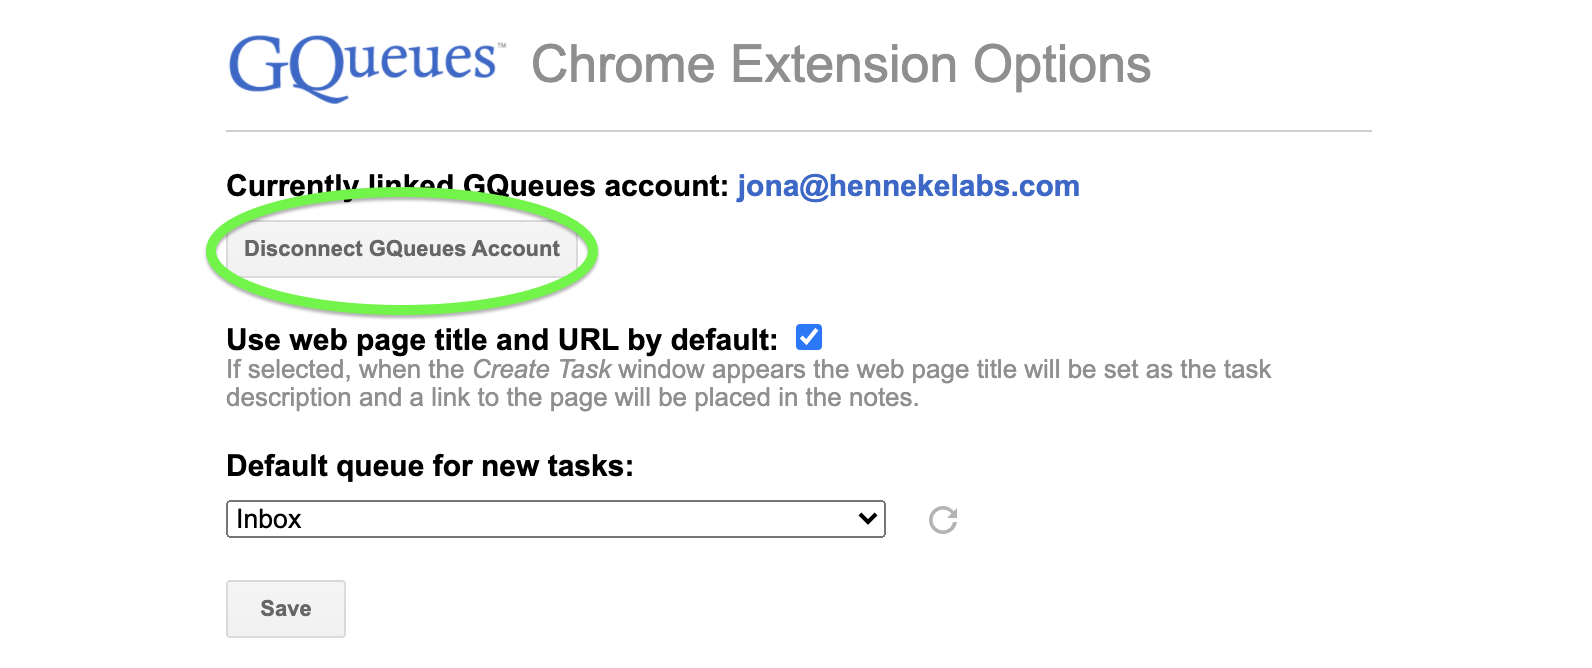 Disconnect your GQueues account from the Chrome Extension.